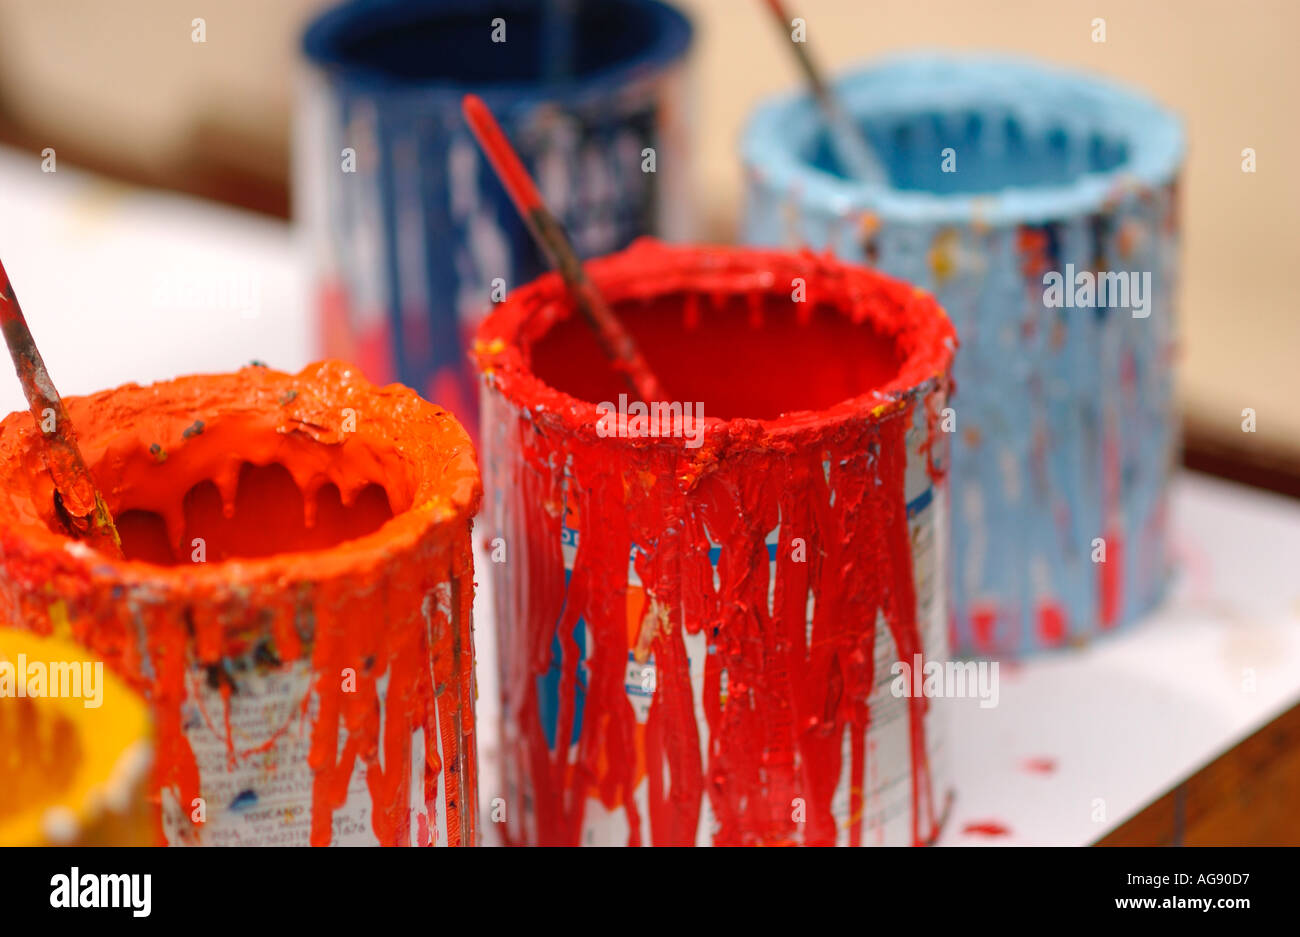 Still Life, Paint Cans - Stock Image